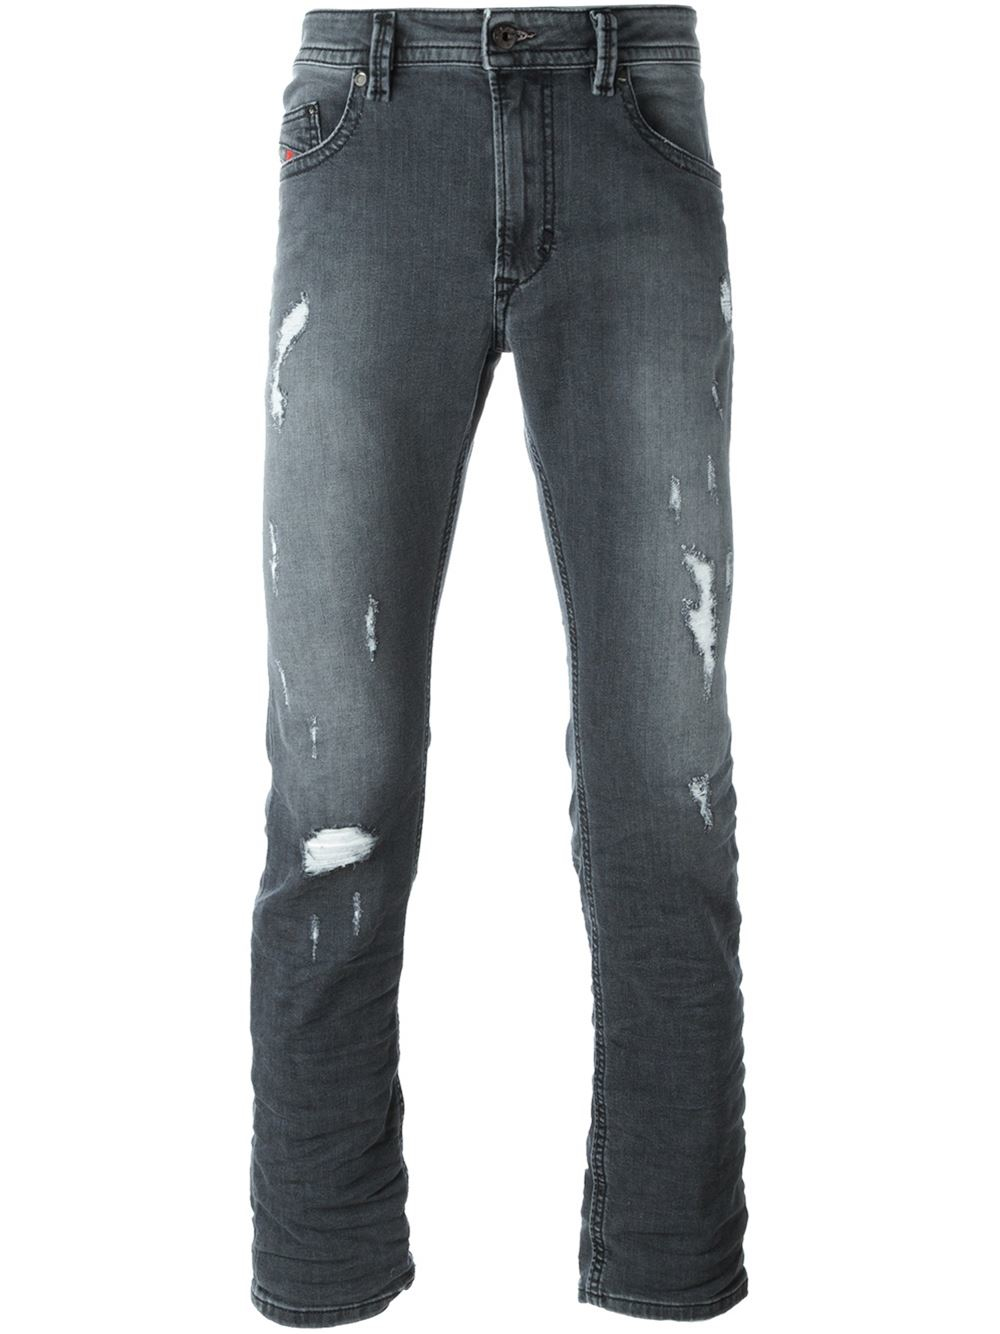 Discover our range of ripped jeans for men at ASOS. Our men's ripped jeans collection is in skinny fit, destroyed & torn styles in a variety of denim hues.